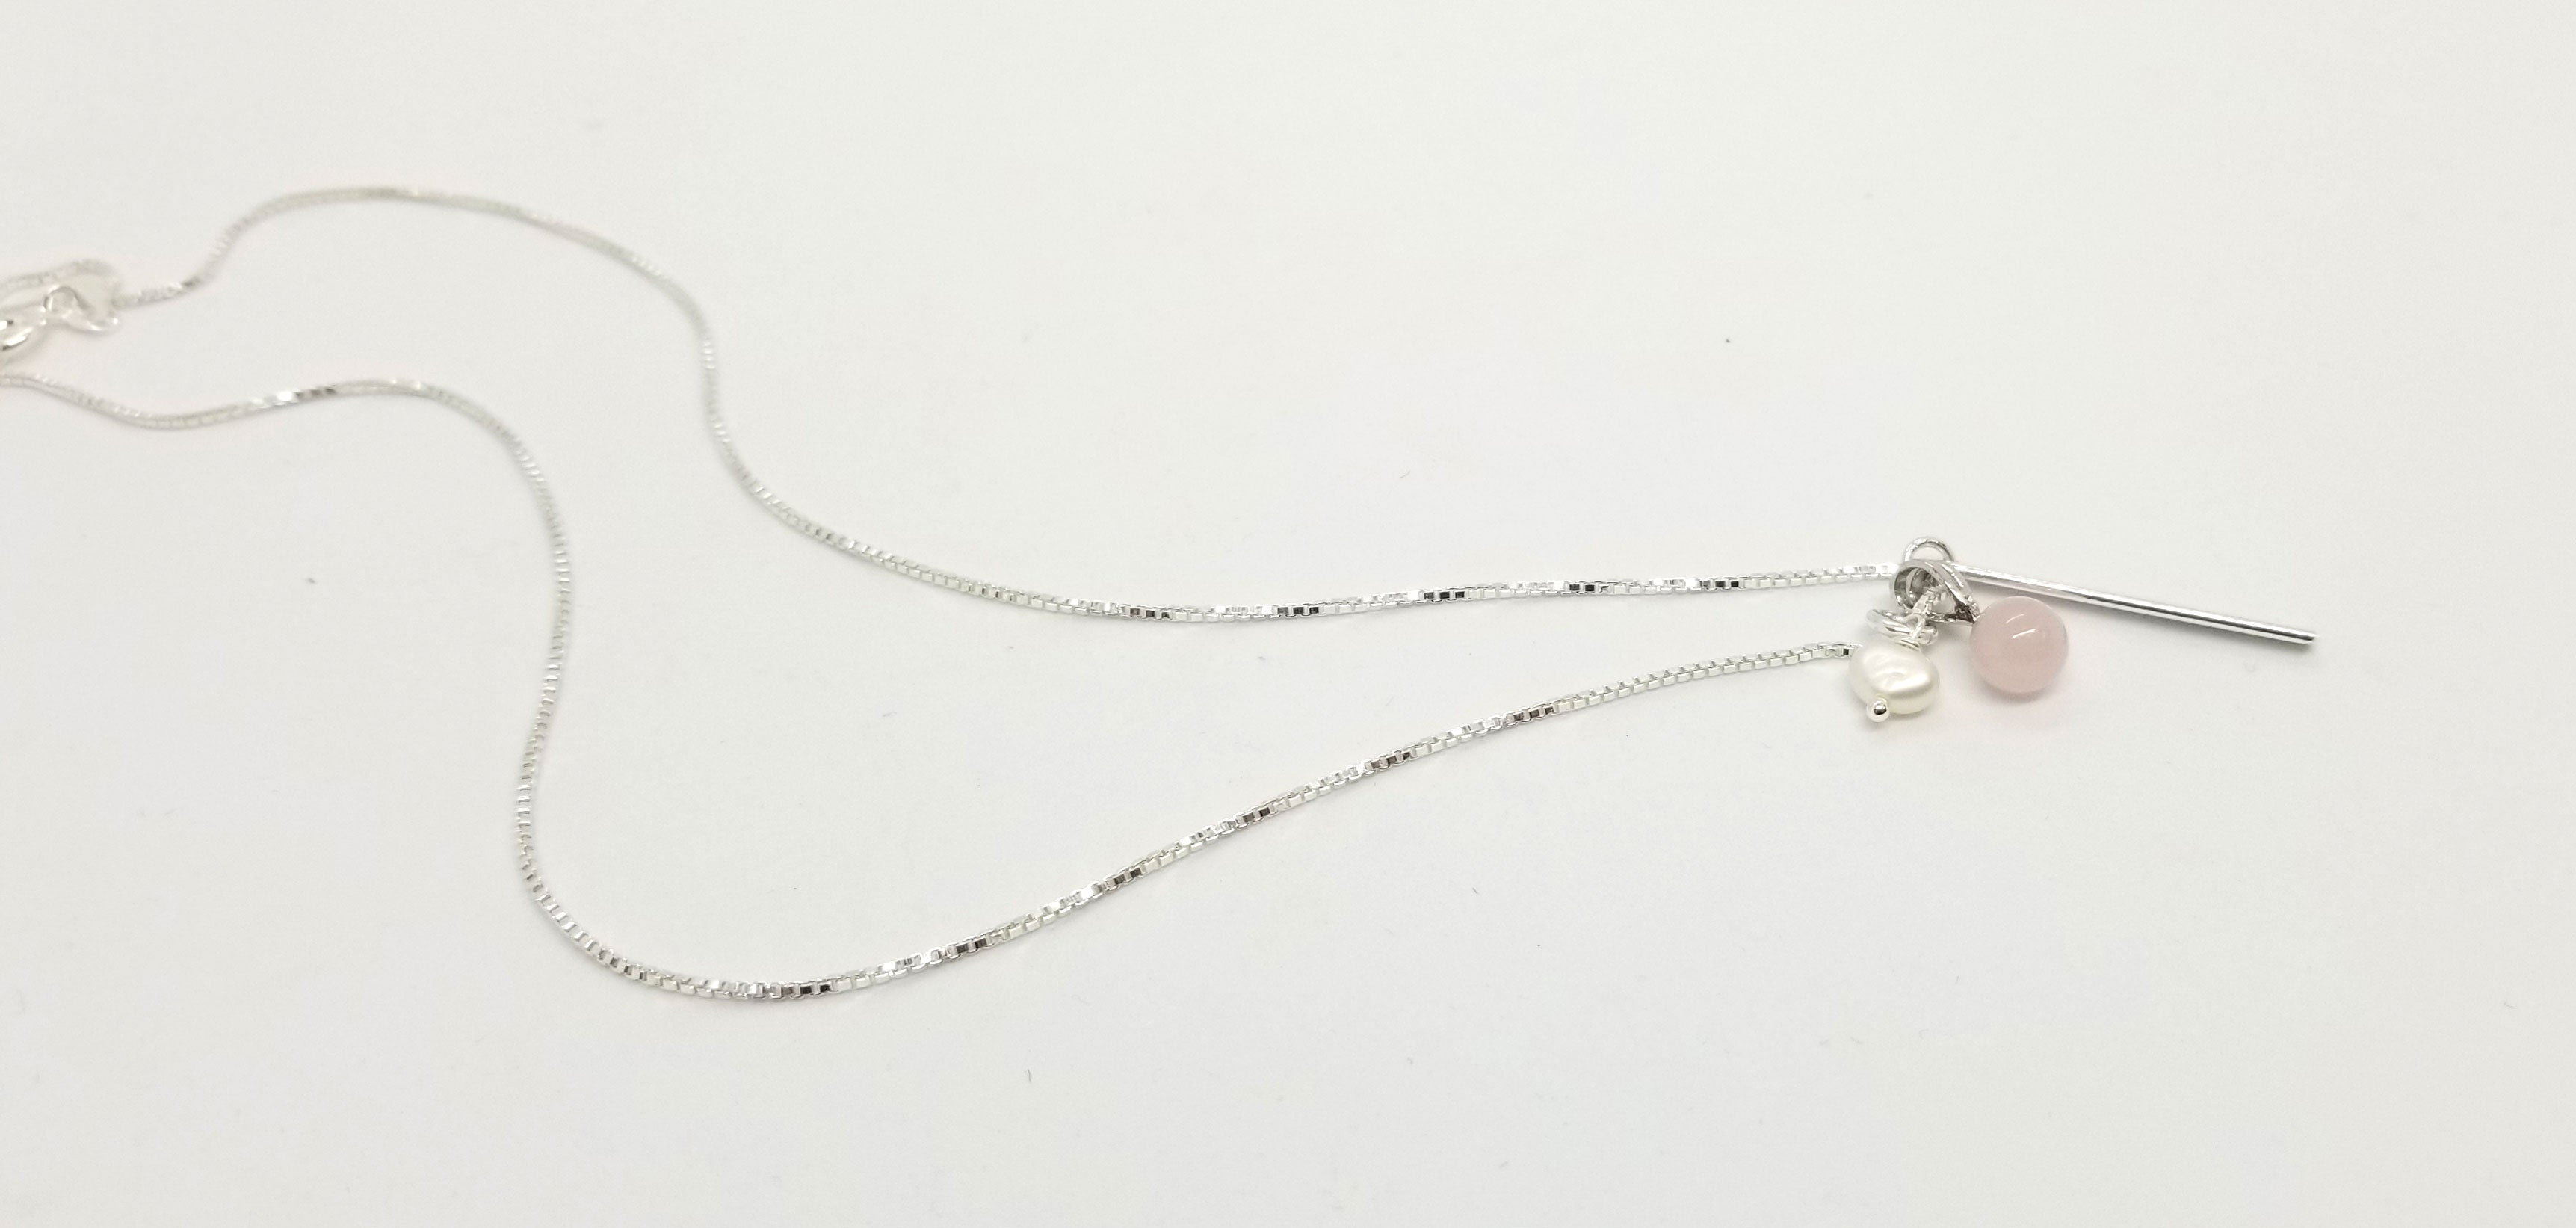 The Cherry Blossom Silver Necklace